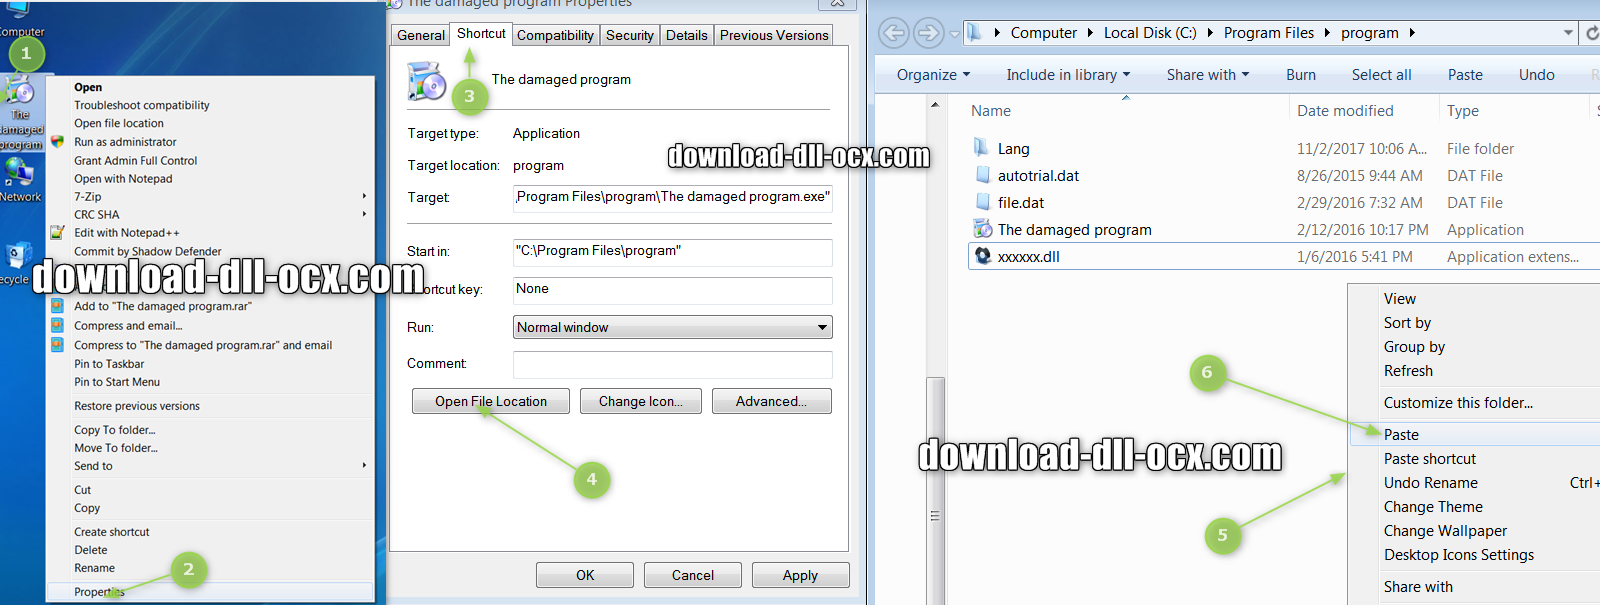 how to install wship6.dll file? for fix missing